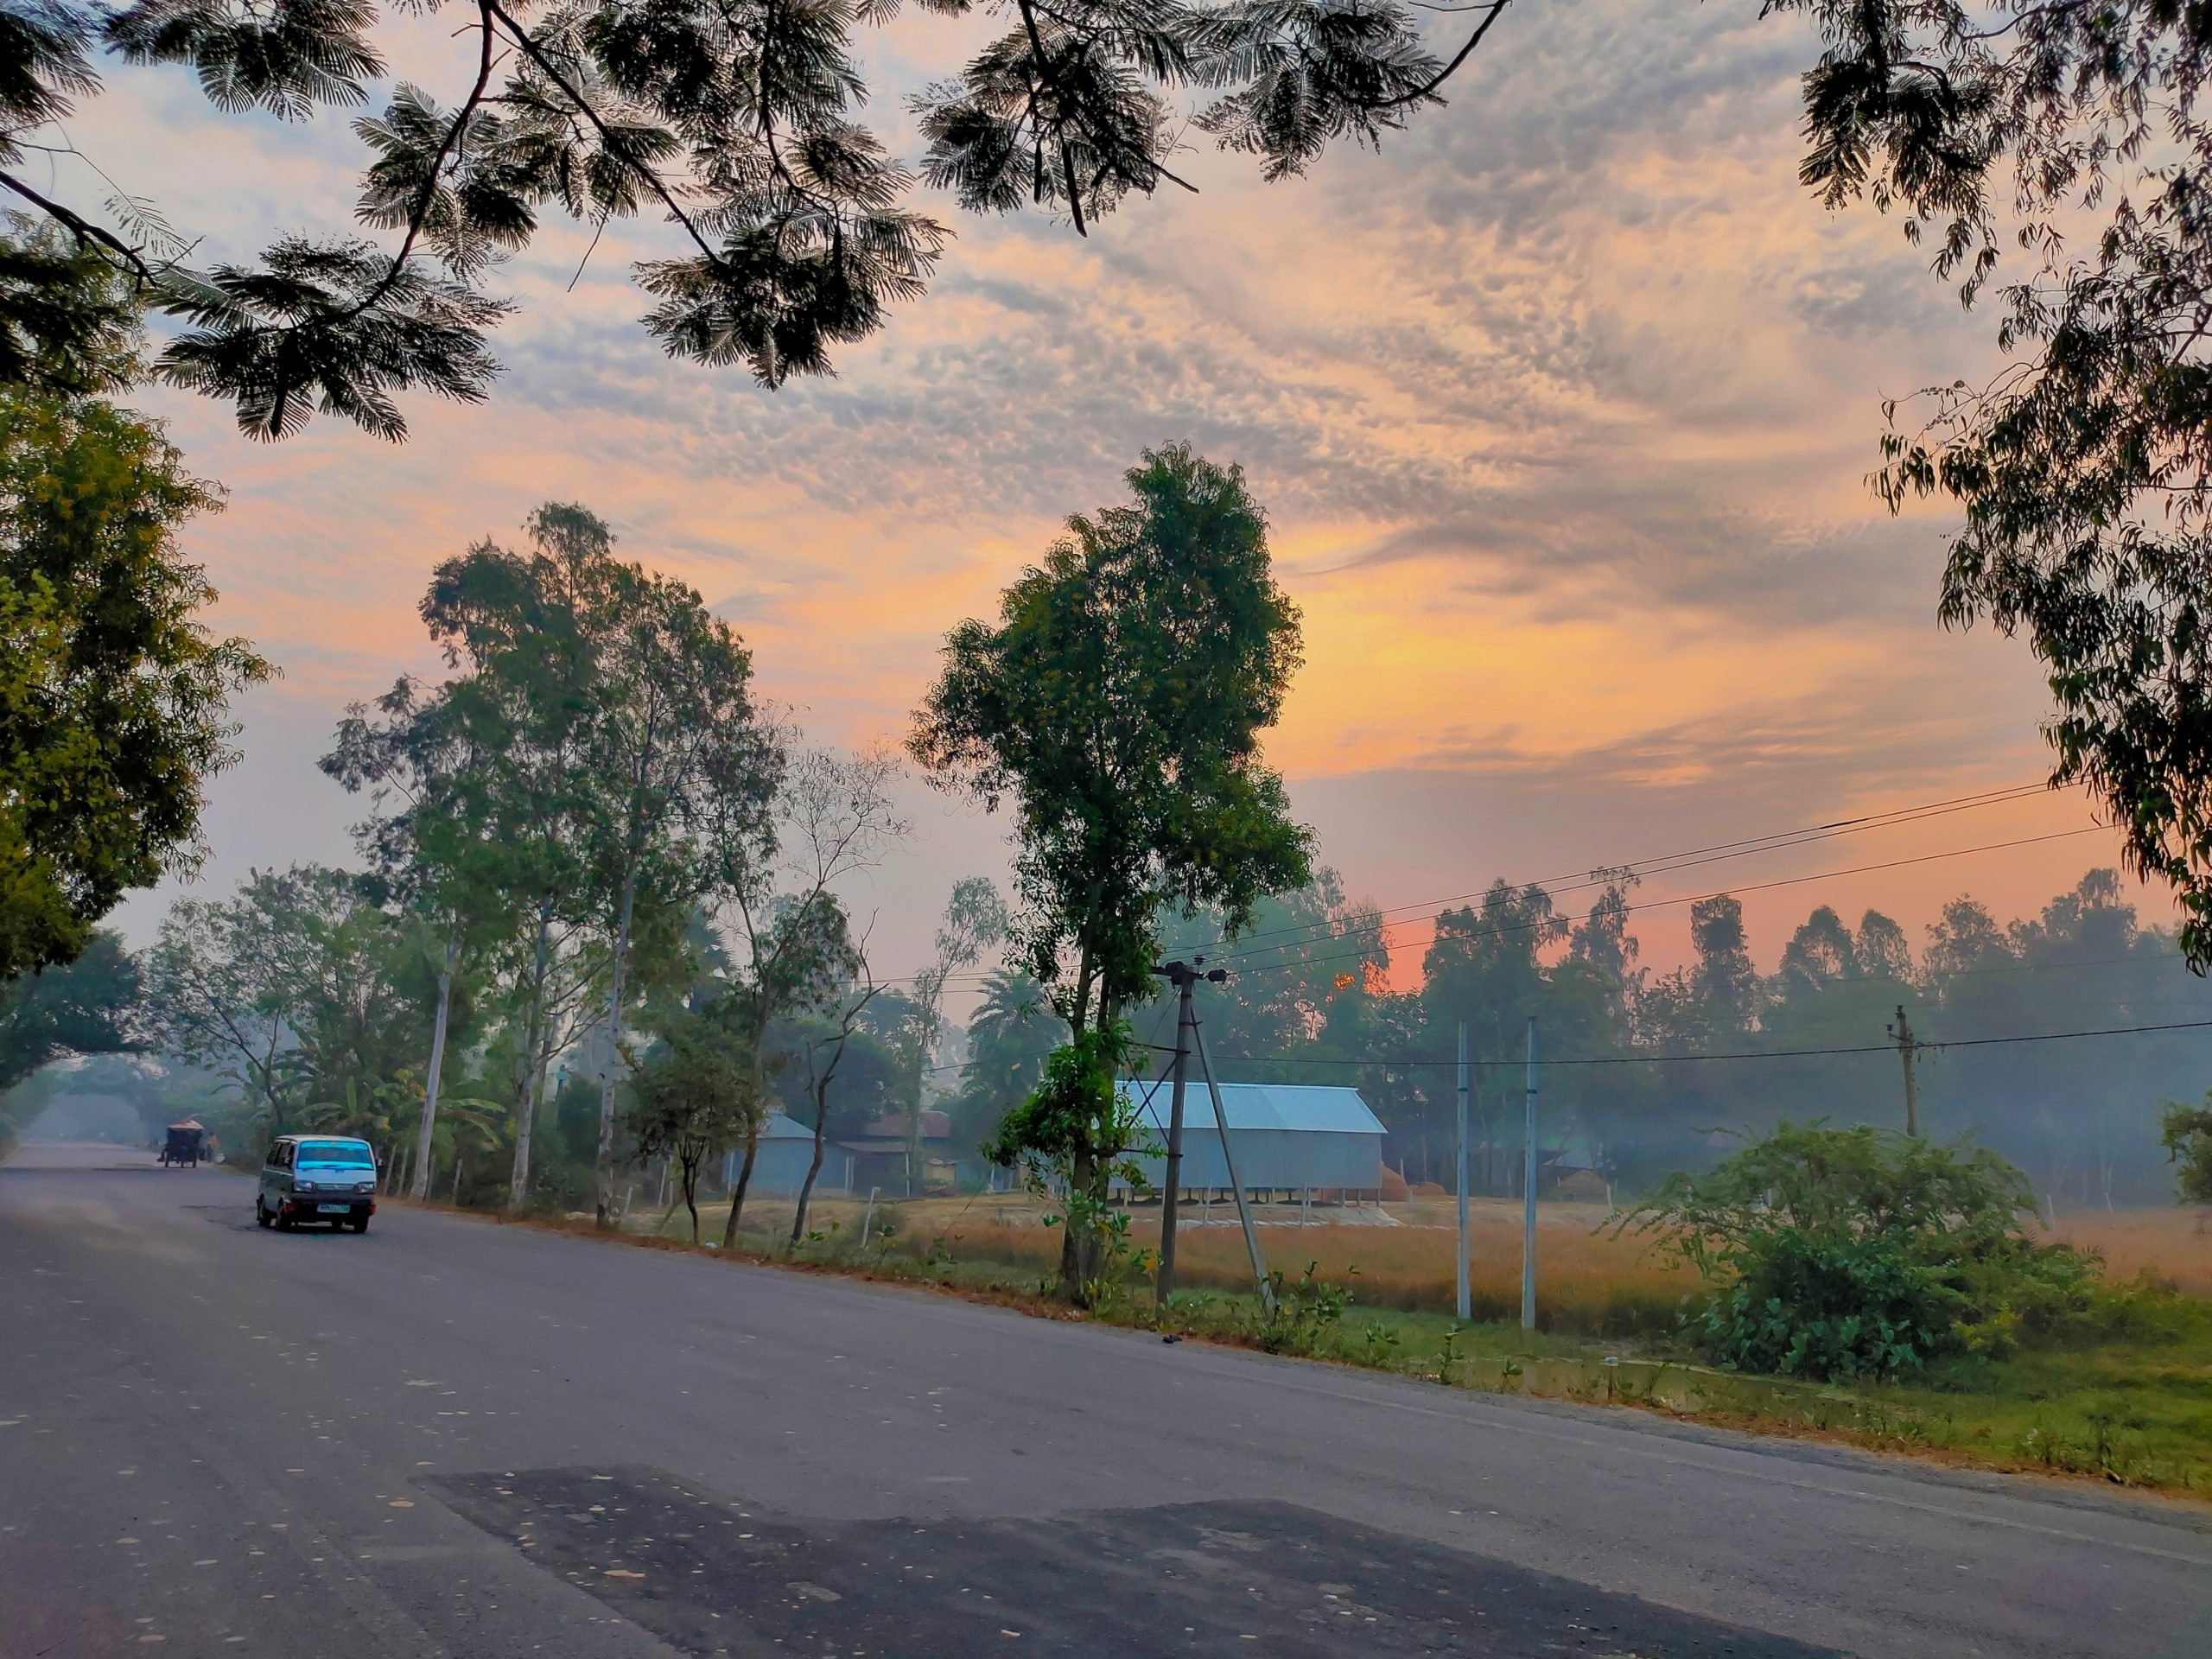 Morning of a road in a village